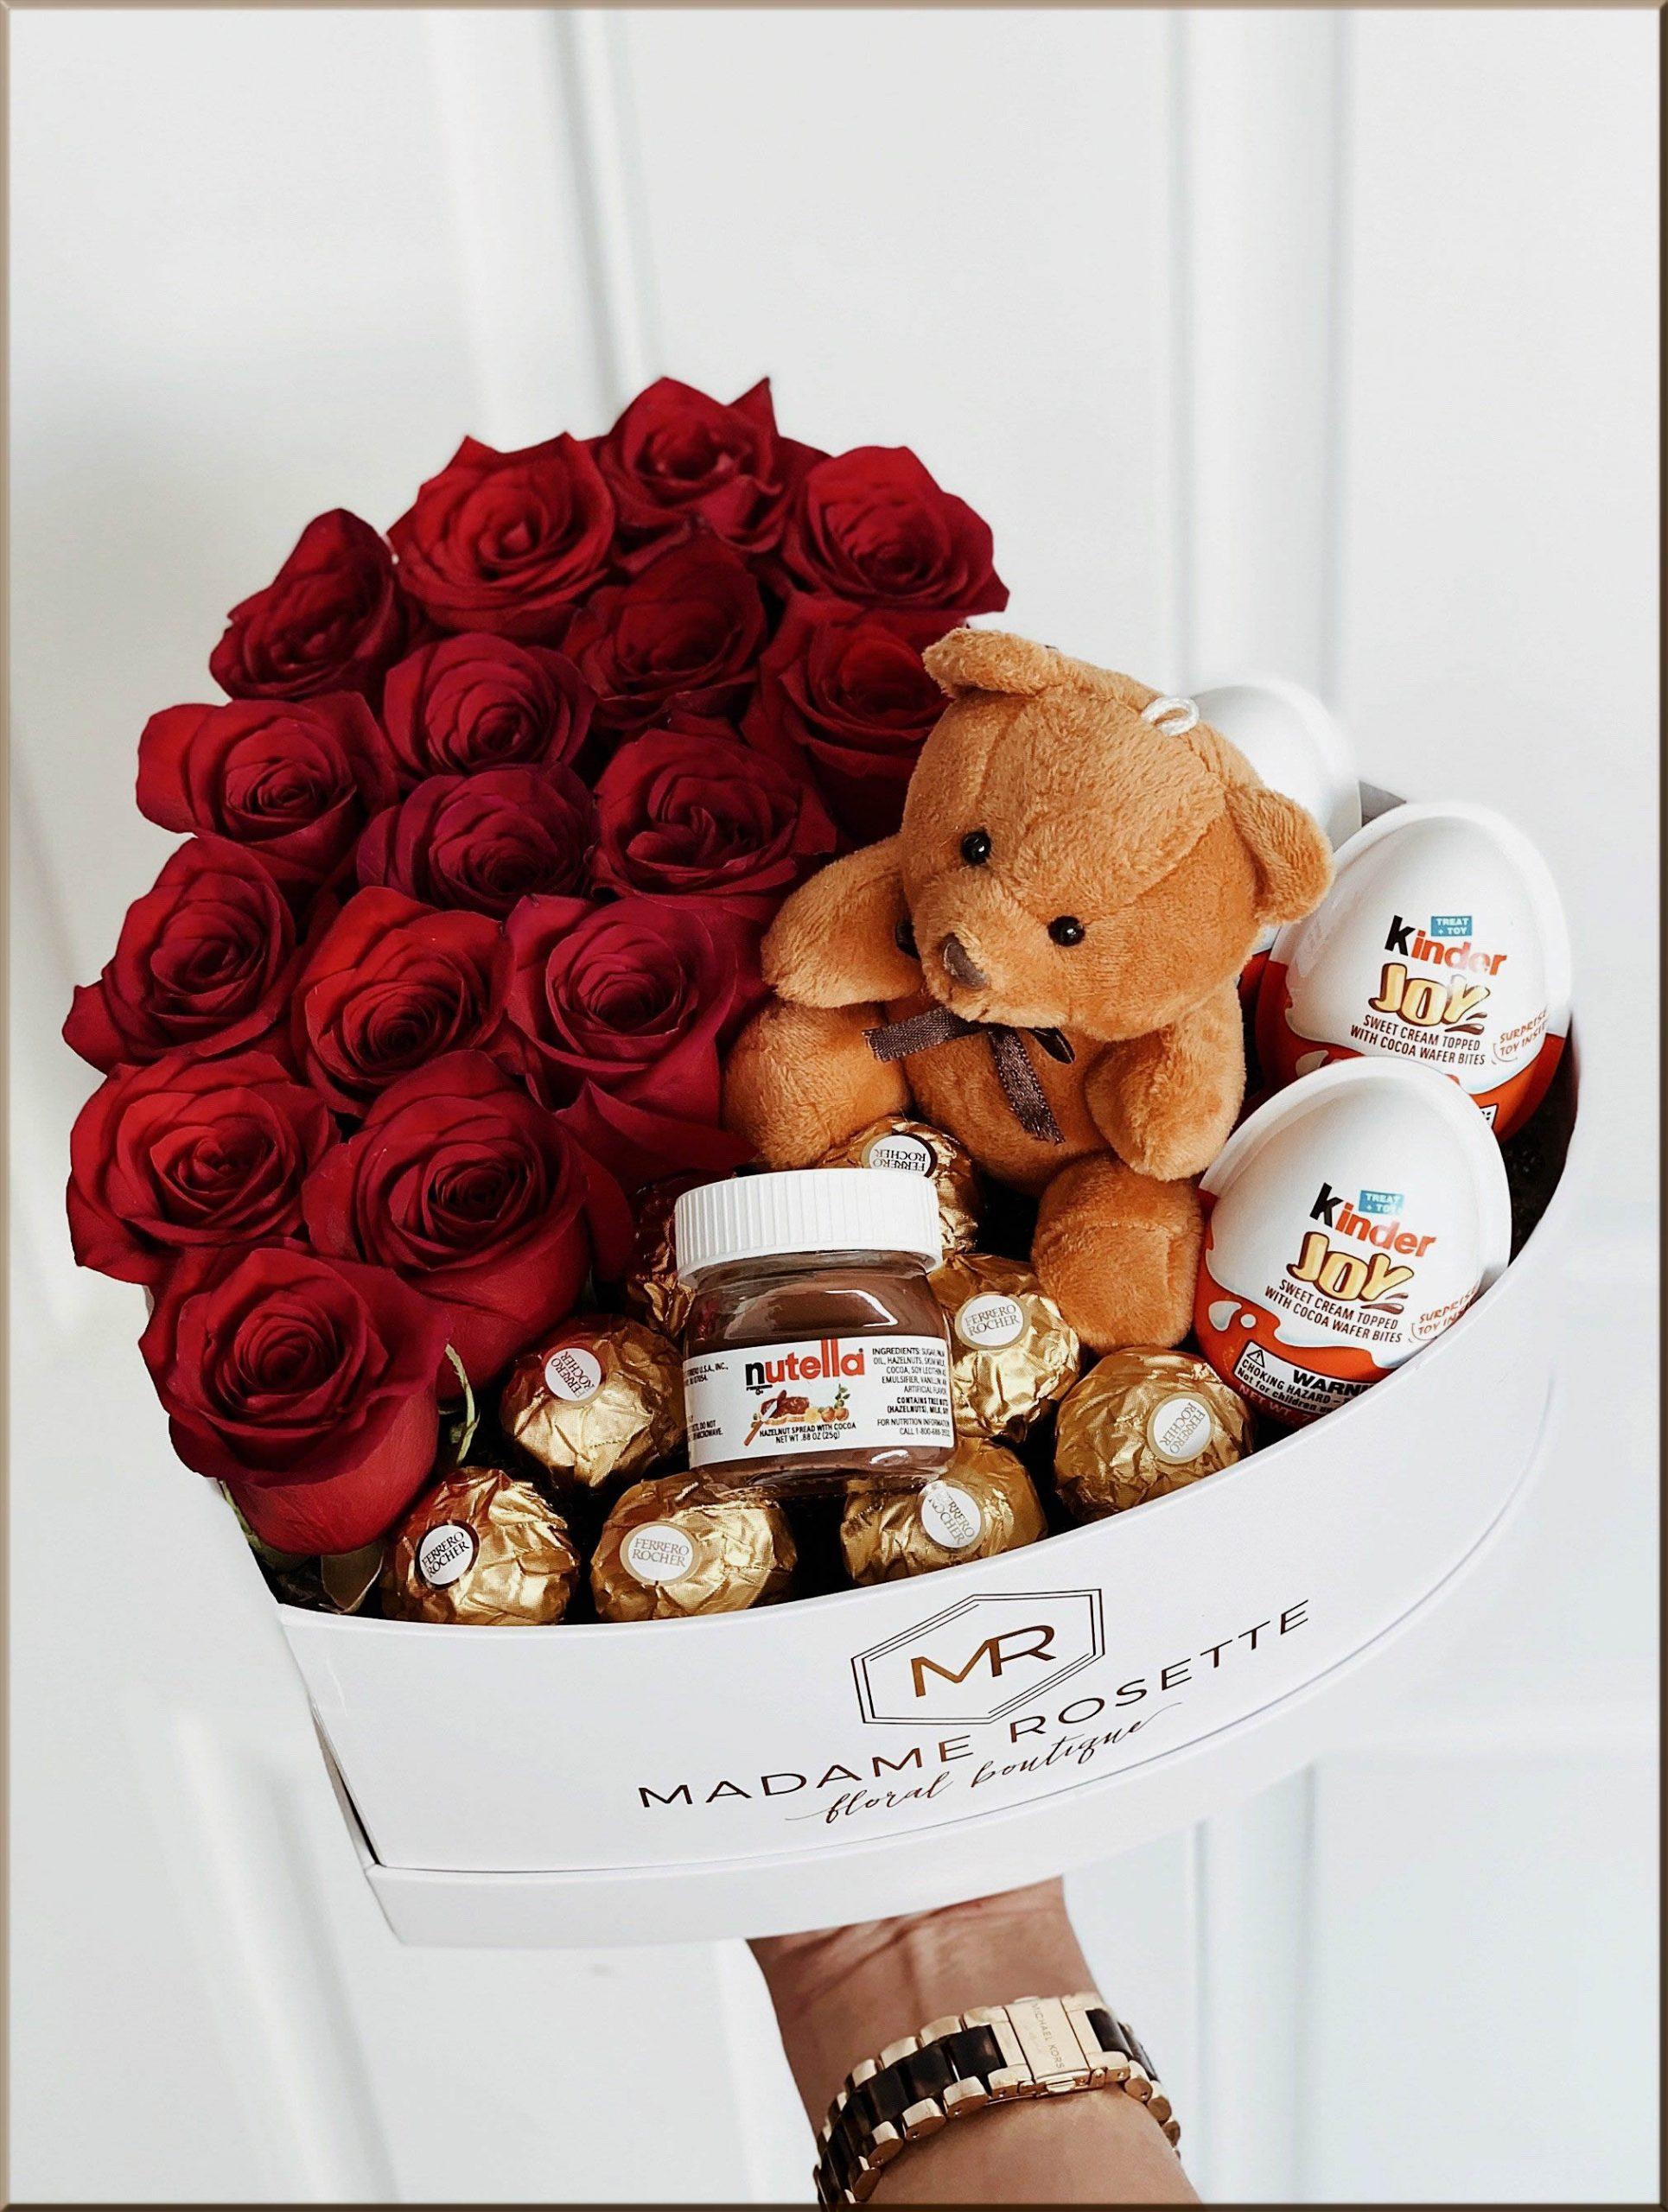 chocolate bouquet with the flowers and teddy